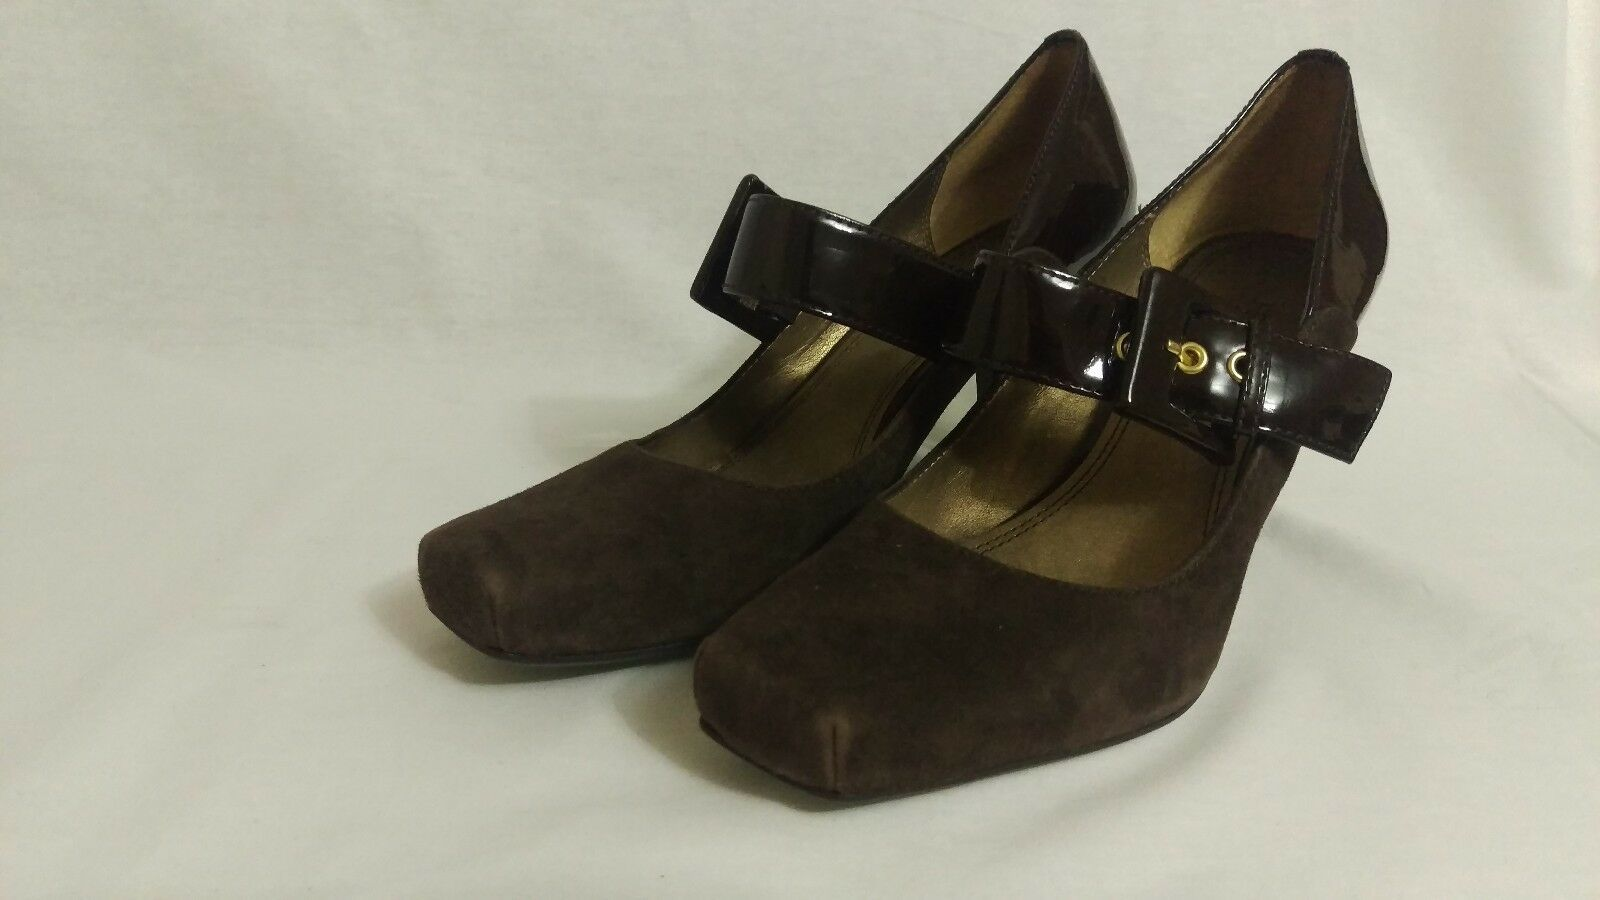 Franco Sarto Women's Brown Shoes size 6M heels image 1